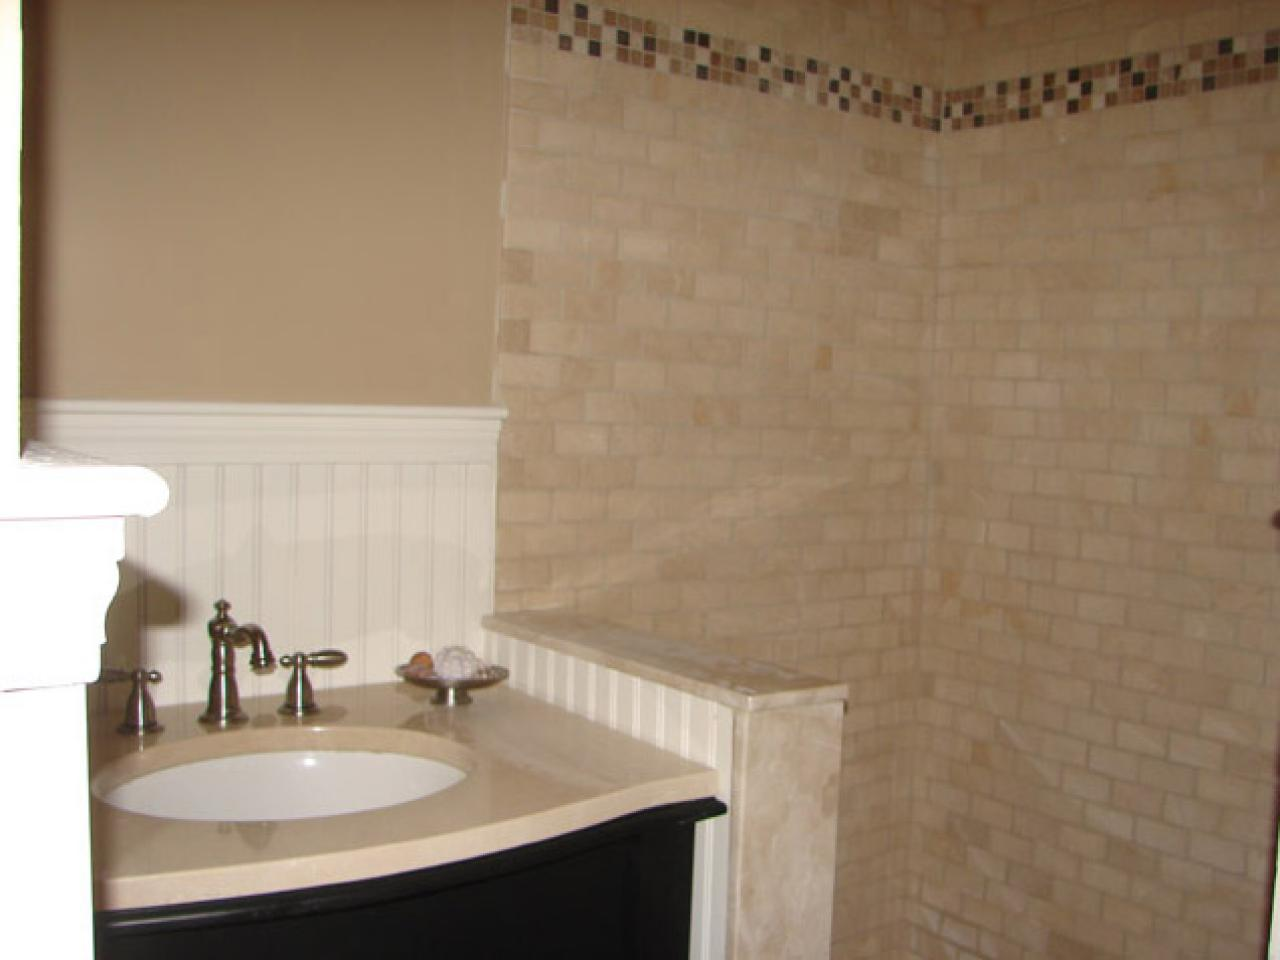 How to install tile in a bathroom shower hgtv - Installing tile around bathtub ...